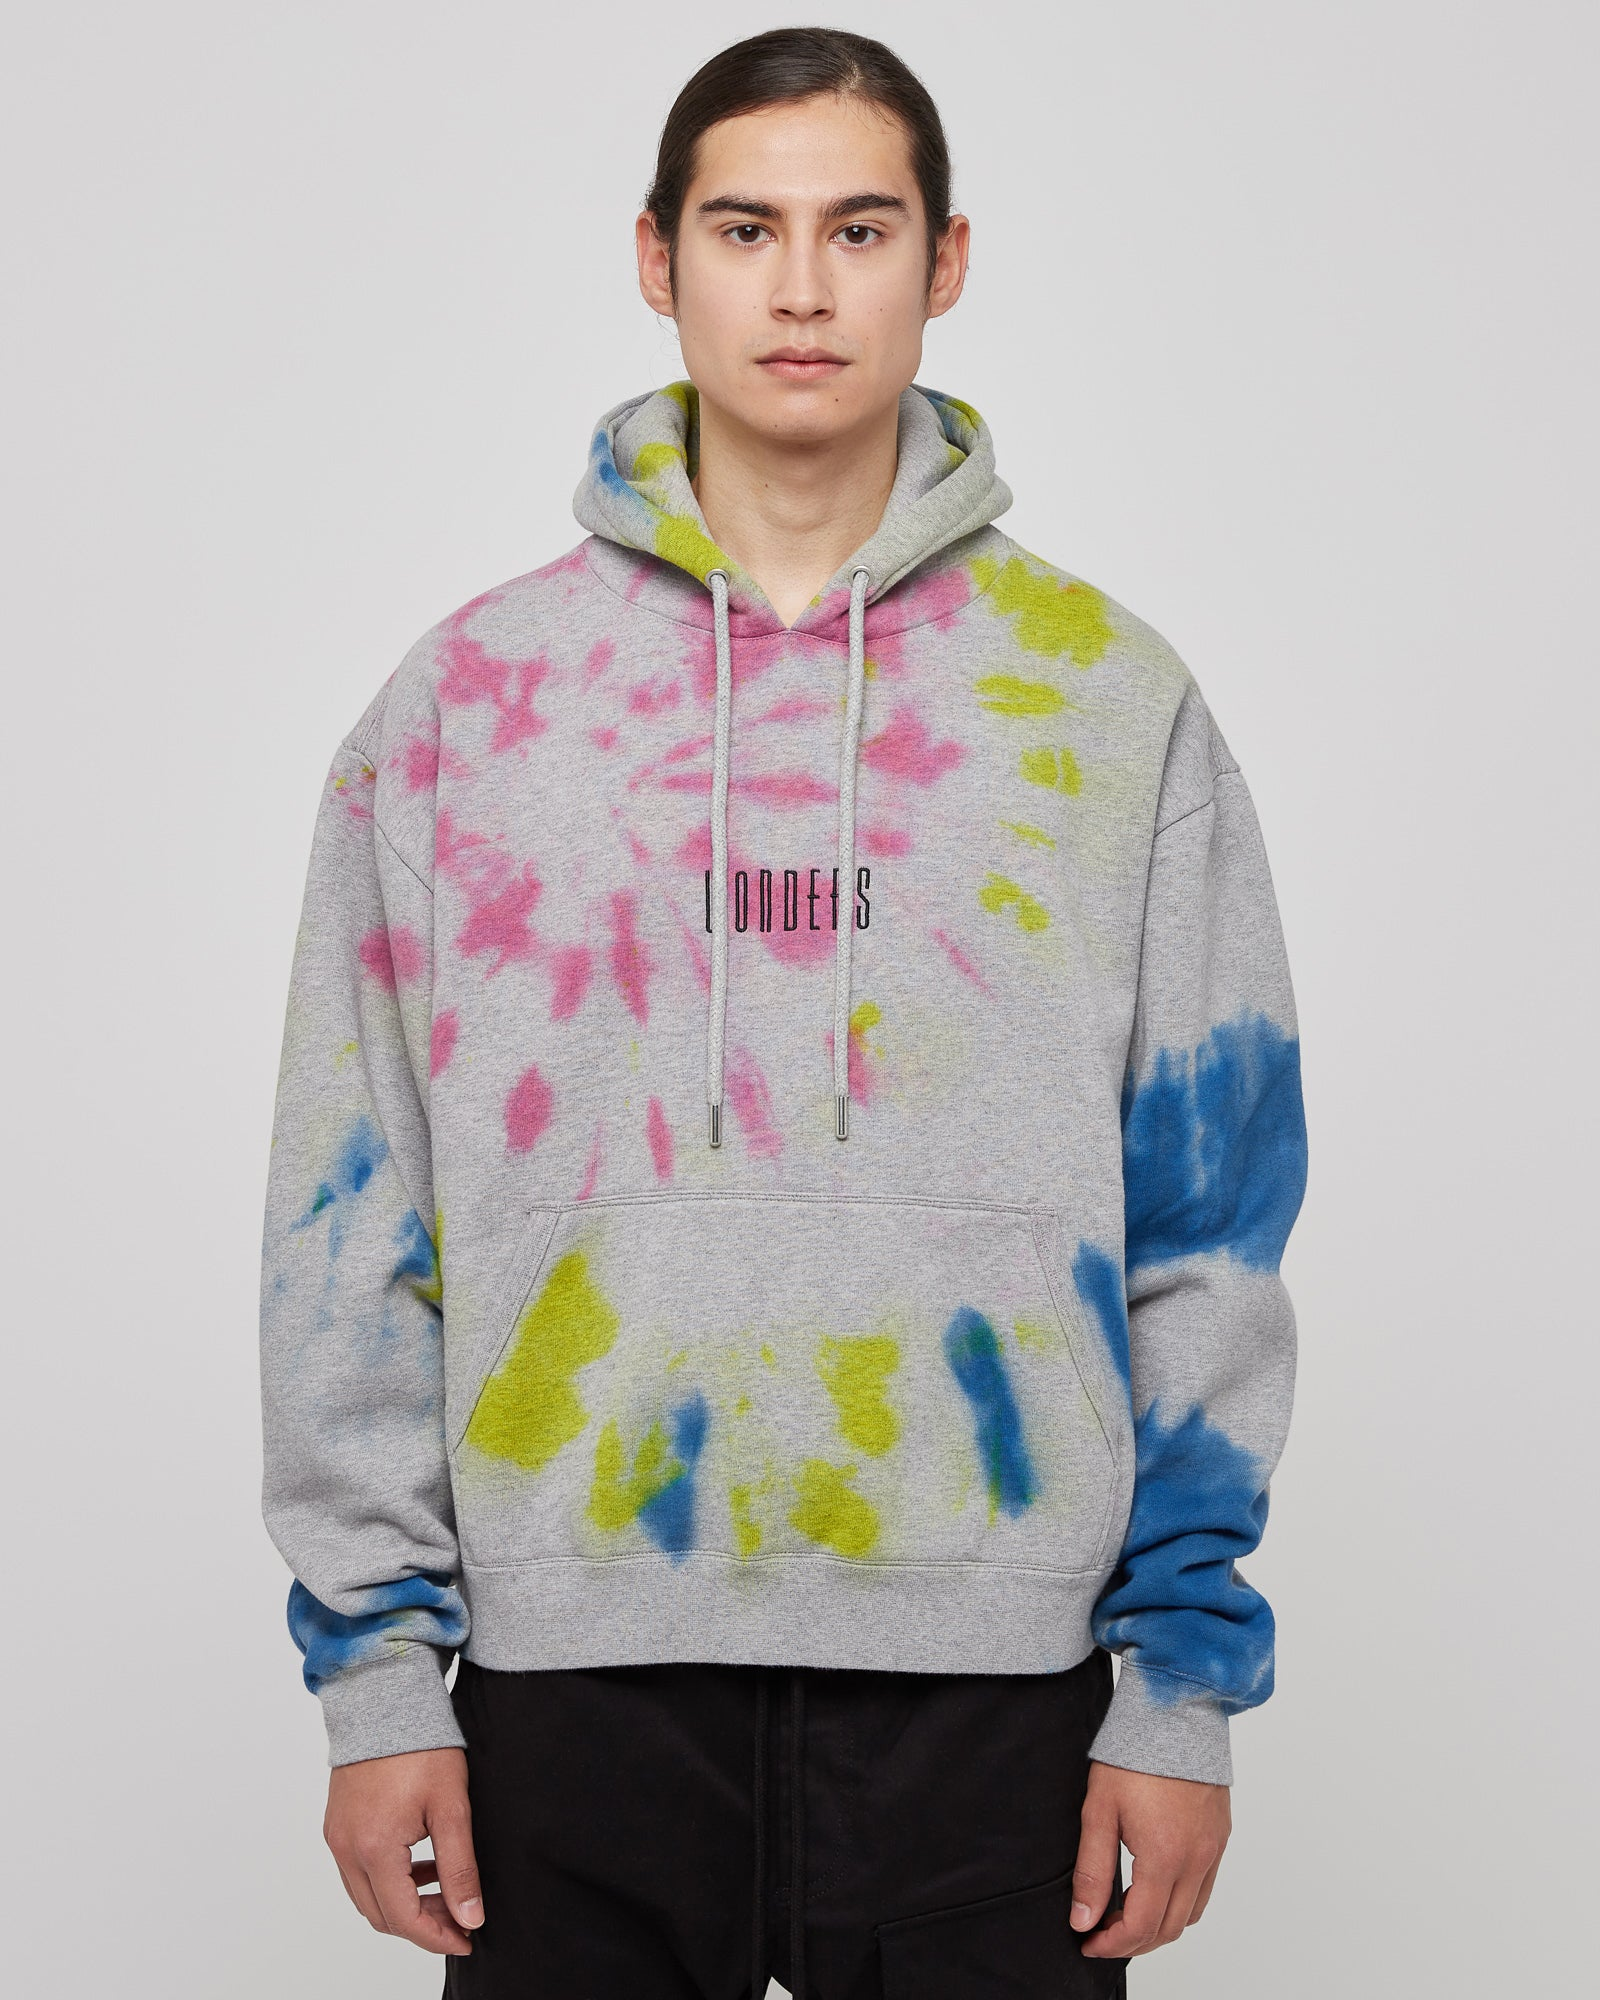 Arts & Crafts Hoodie in Multi Spray